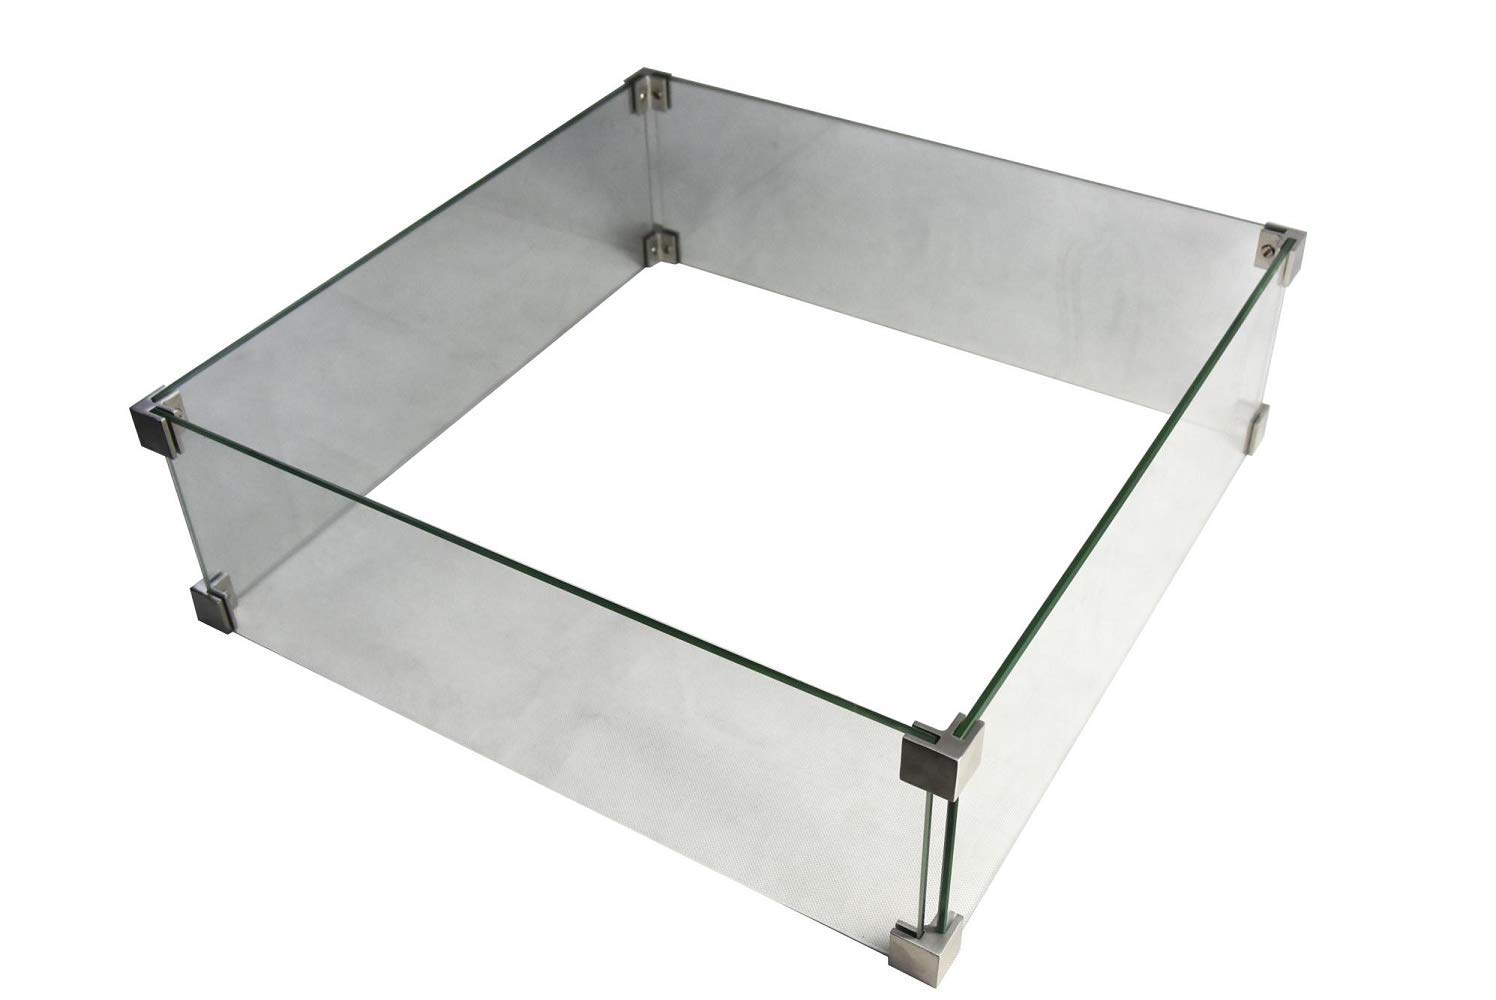 Elementi Outdoor Manhattan Fire Pit Table Tempered Glass ScreennSquare 22 x 22 x 7 inches Heavy Duty Firepit Accessory Wind Screen, Clear by Elementi